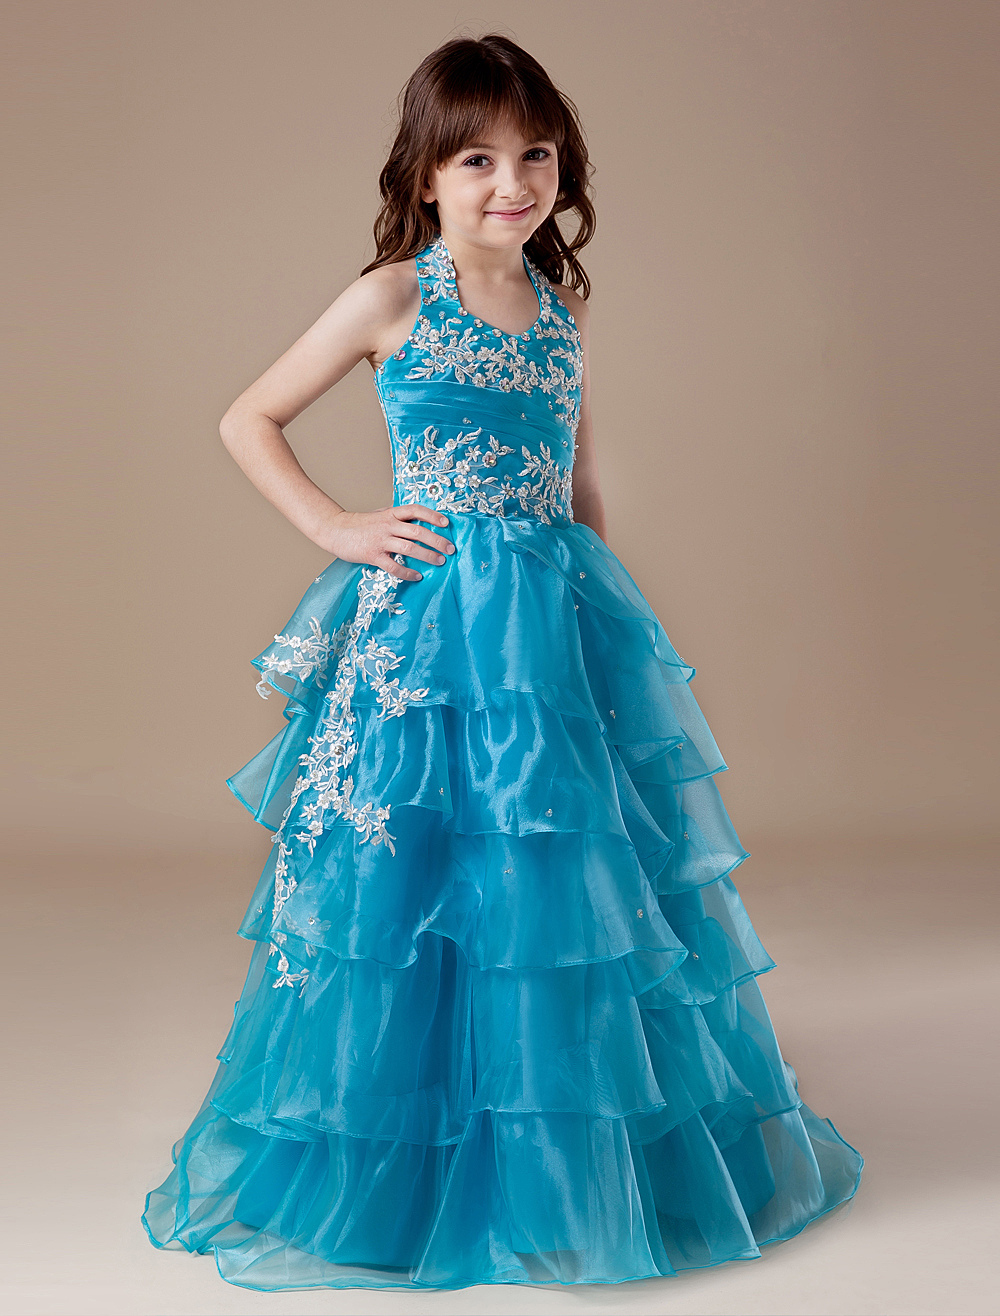 Toddler S Pageant Dress Ball Gown Floor Length Teal